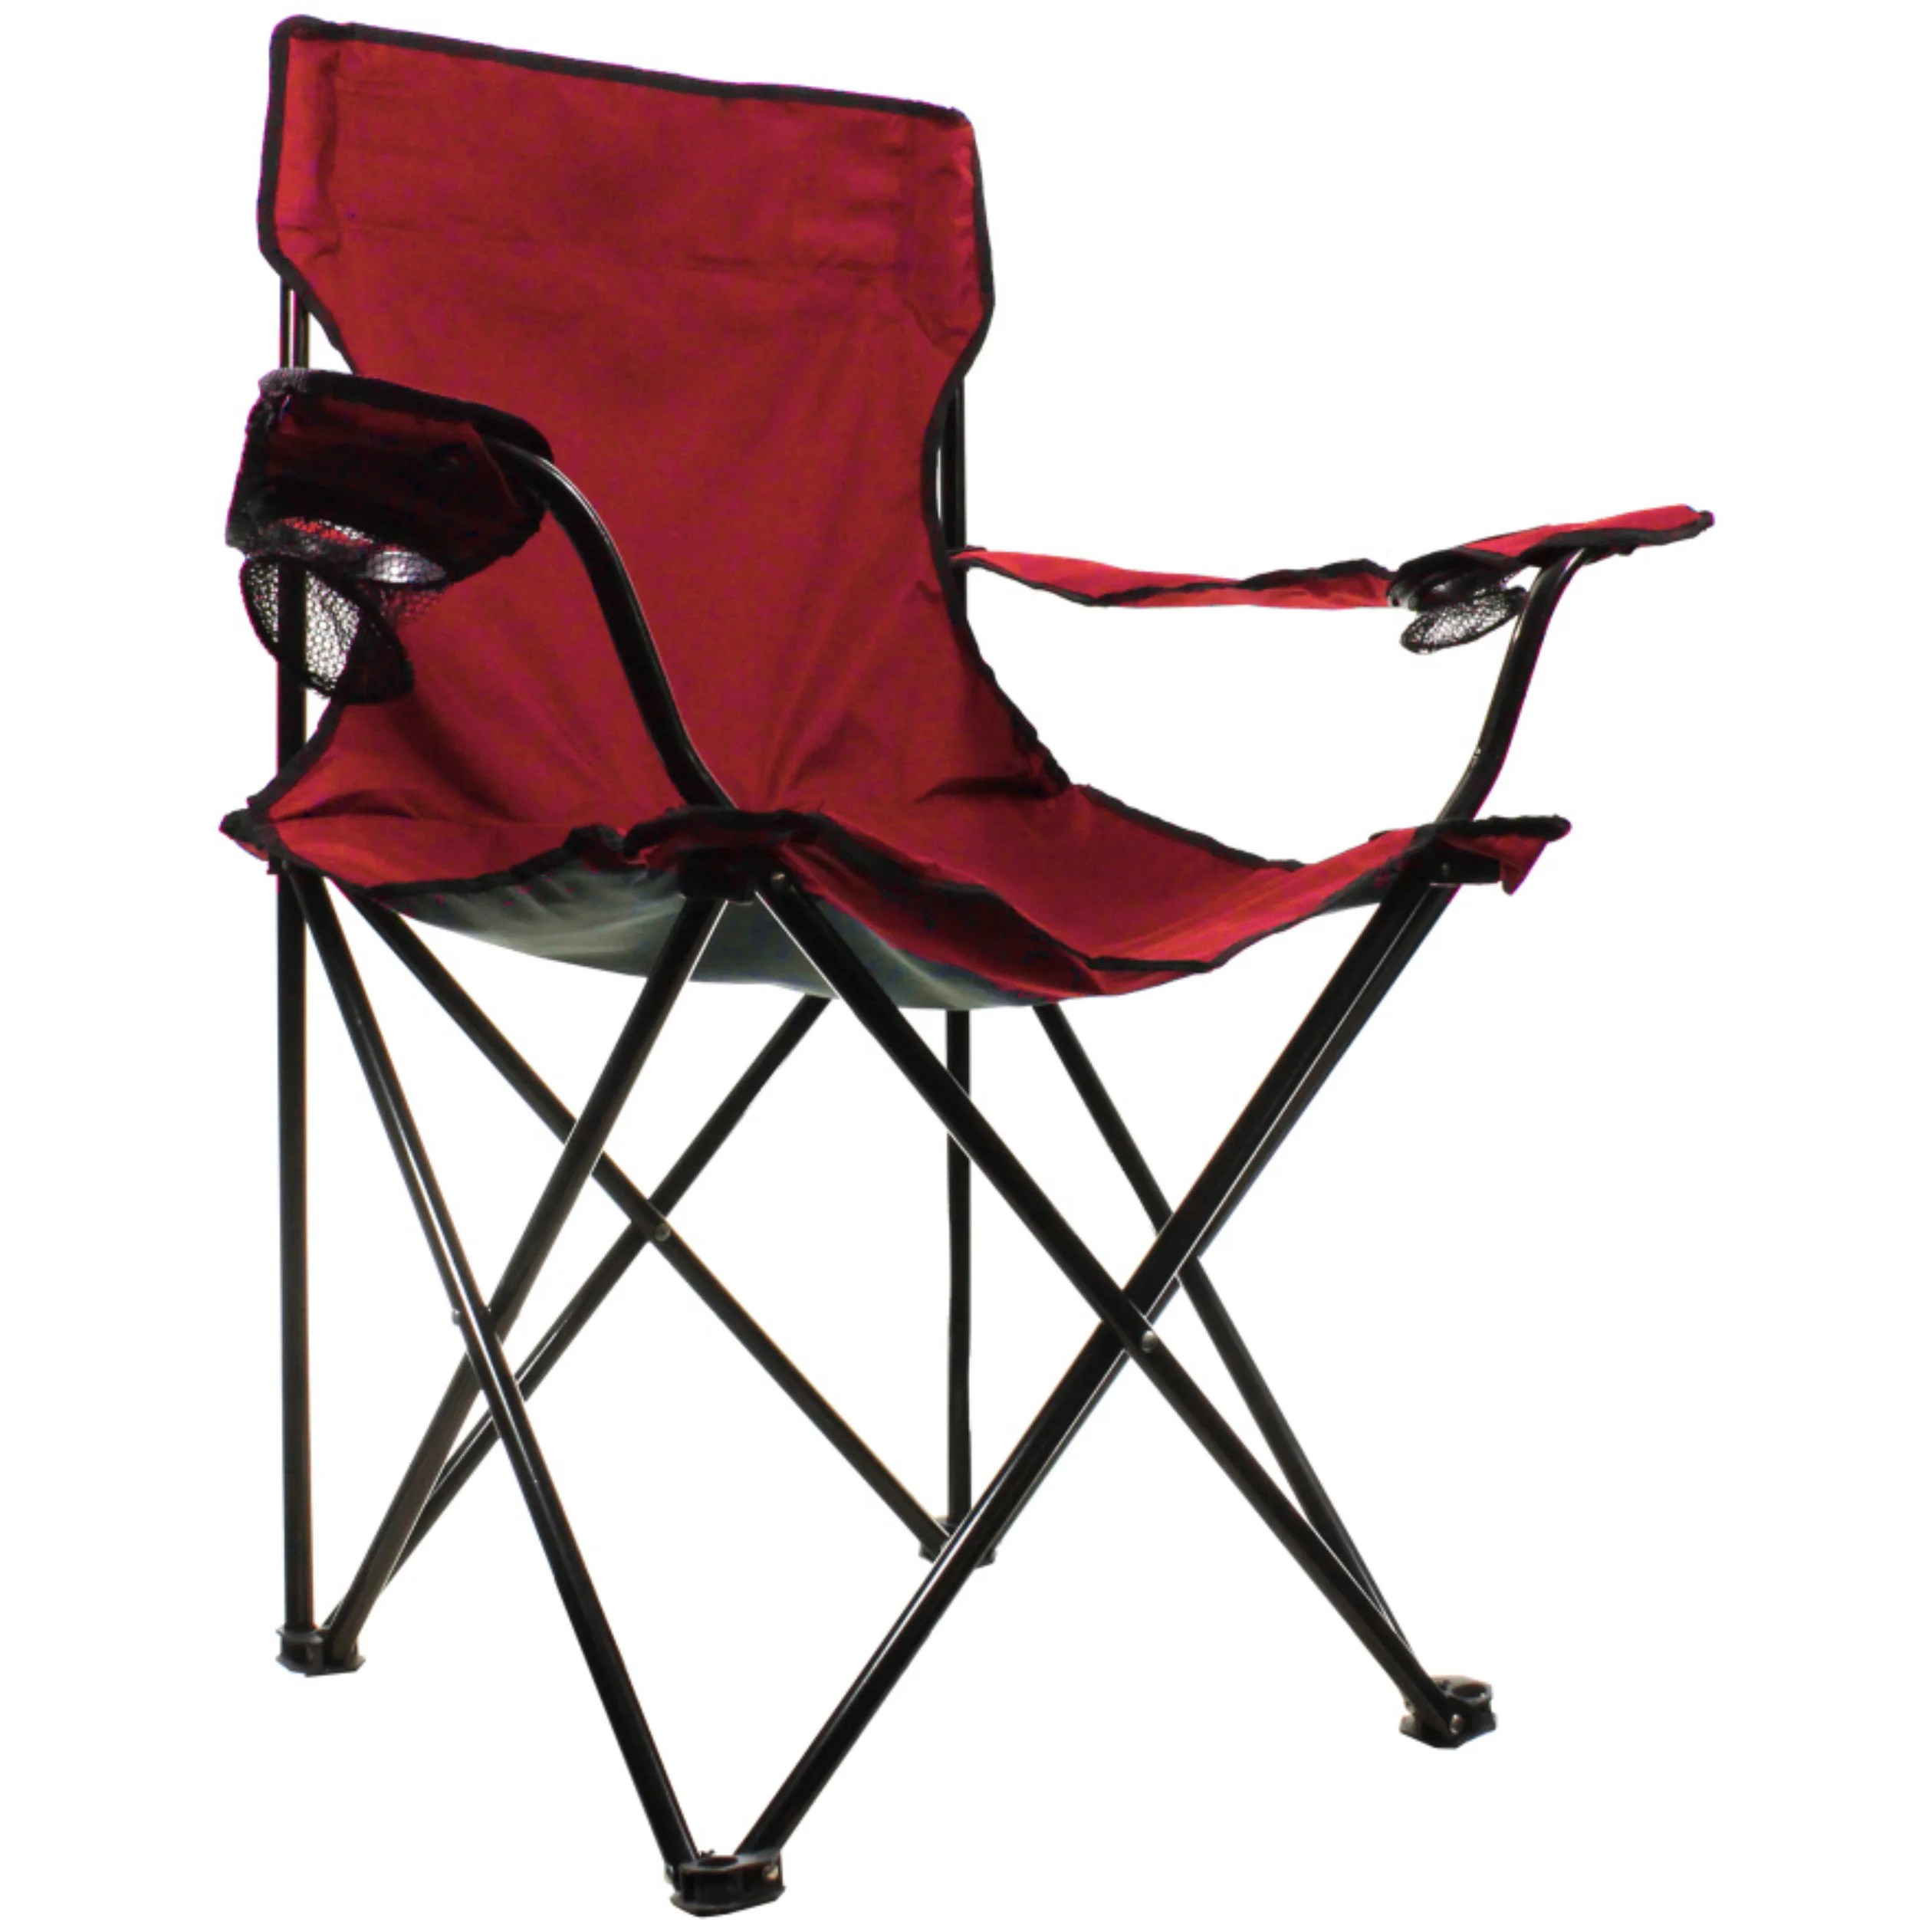 folding chairs in bags chair that fits your pocket with carrying bag trade show giveaways